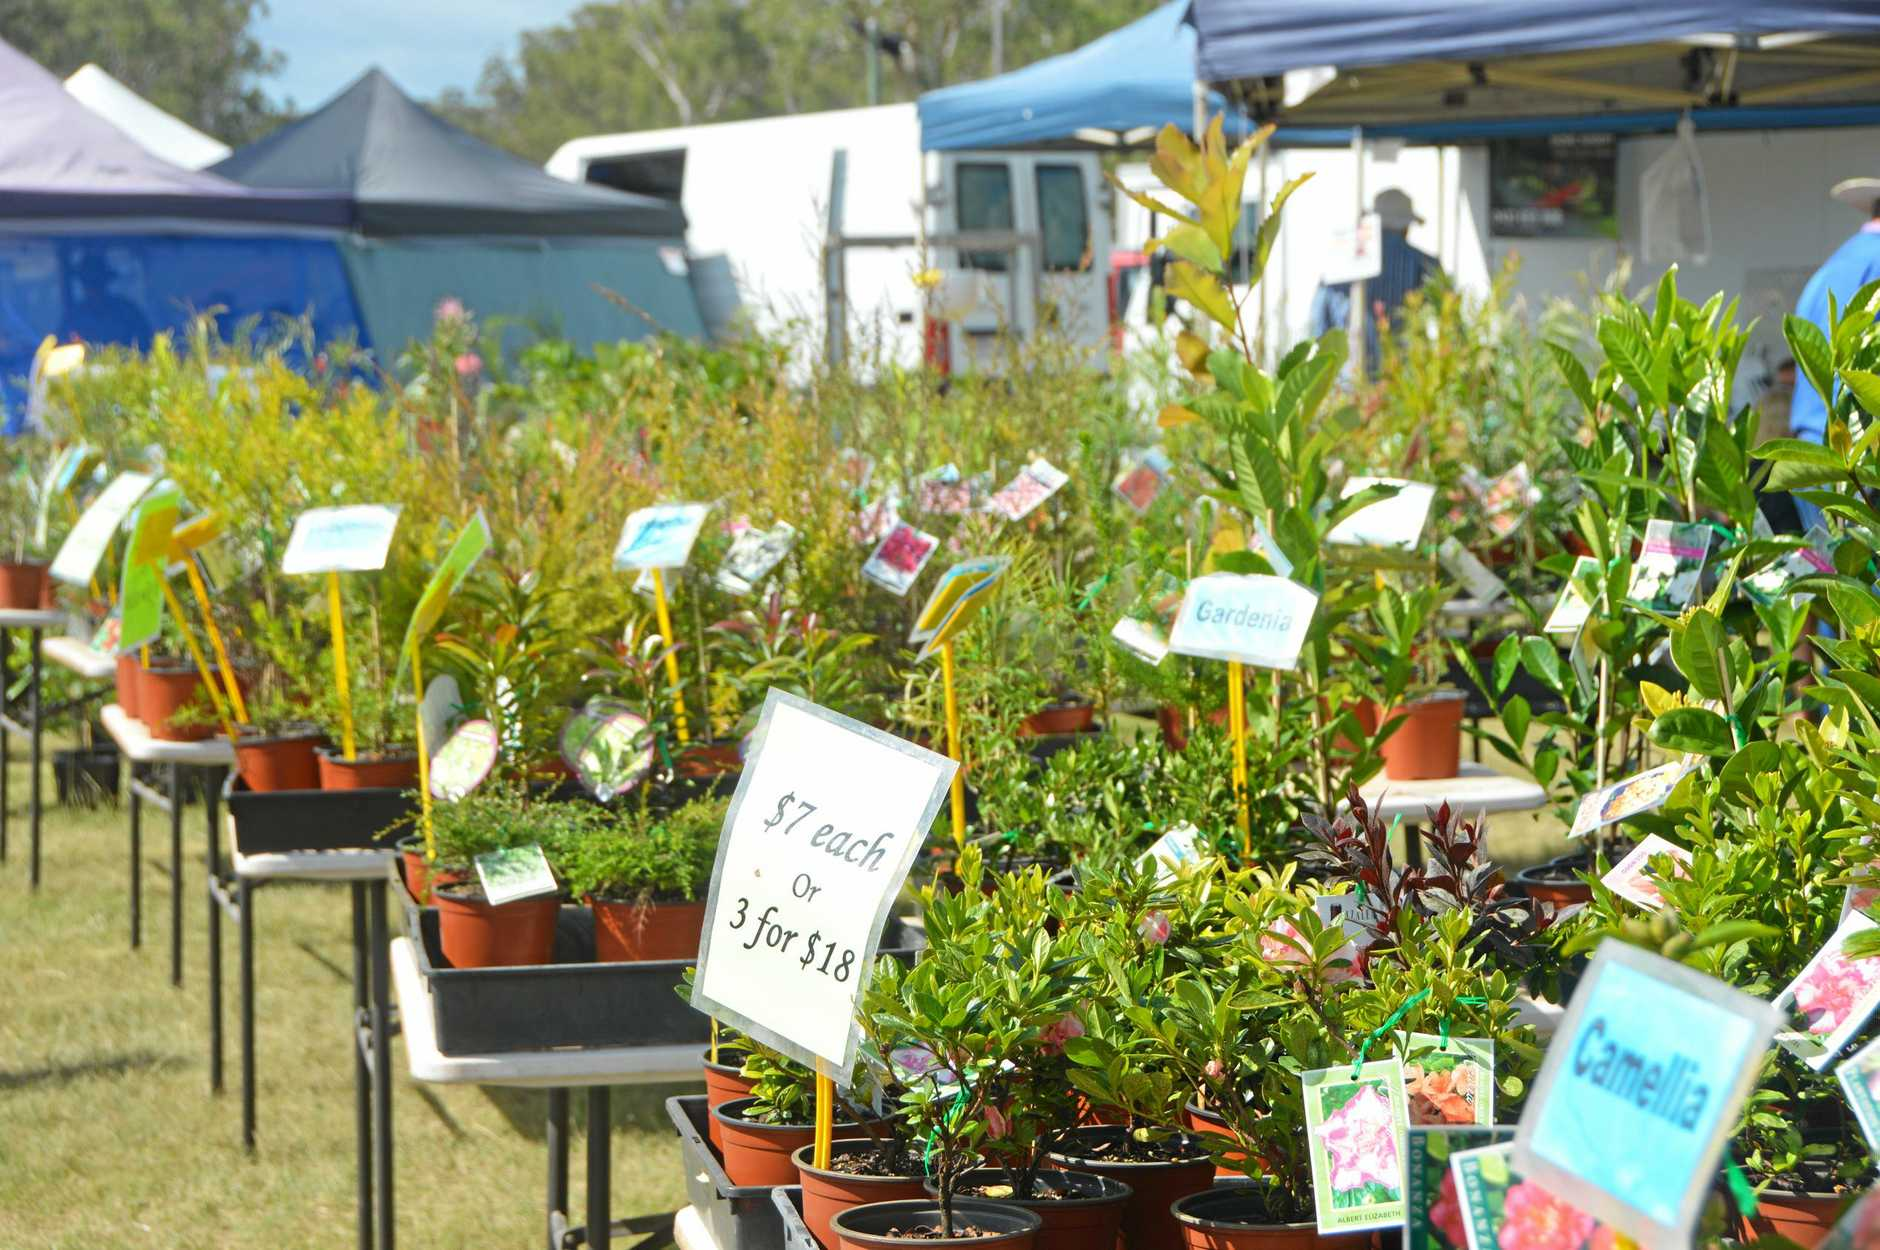 The display at the Autumn Wondai Garden Expo earlier this year.